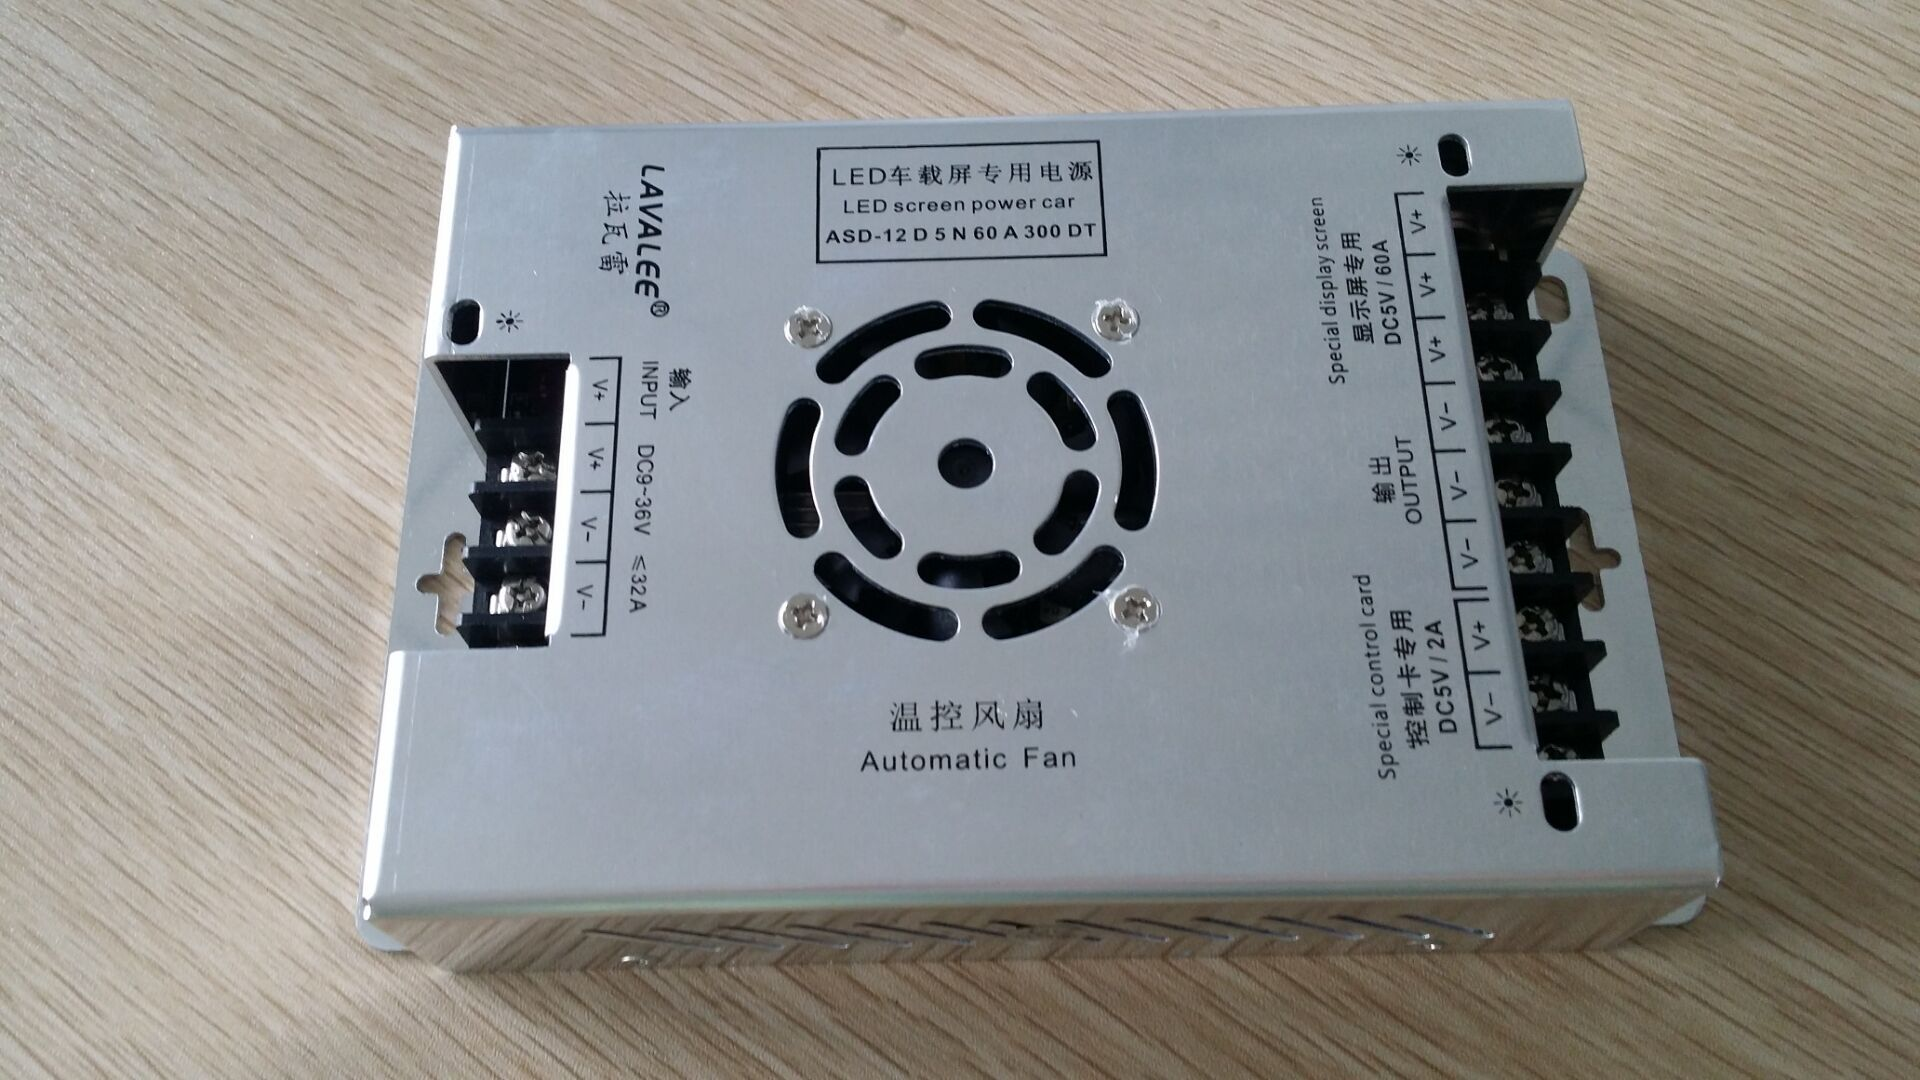 nguon-lavalee-led-5v-60a-300w